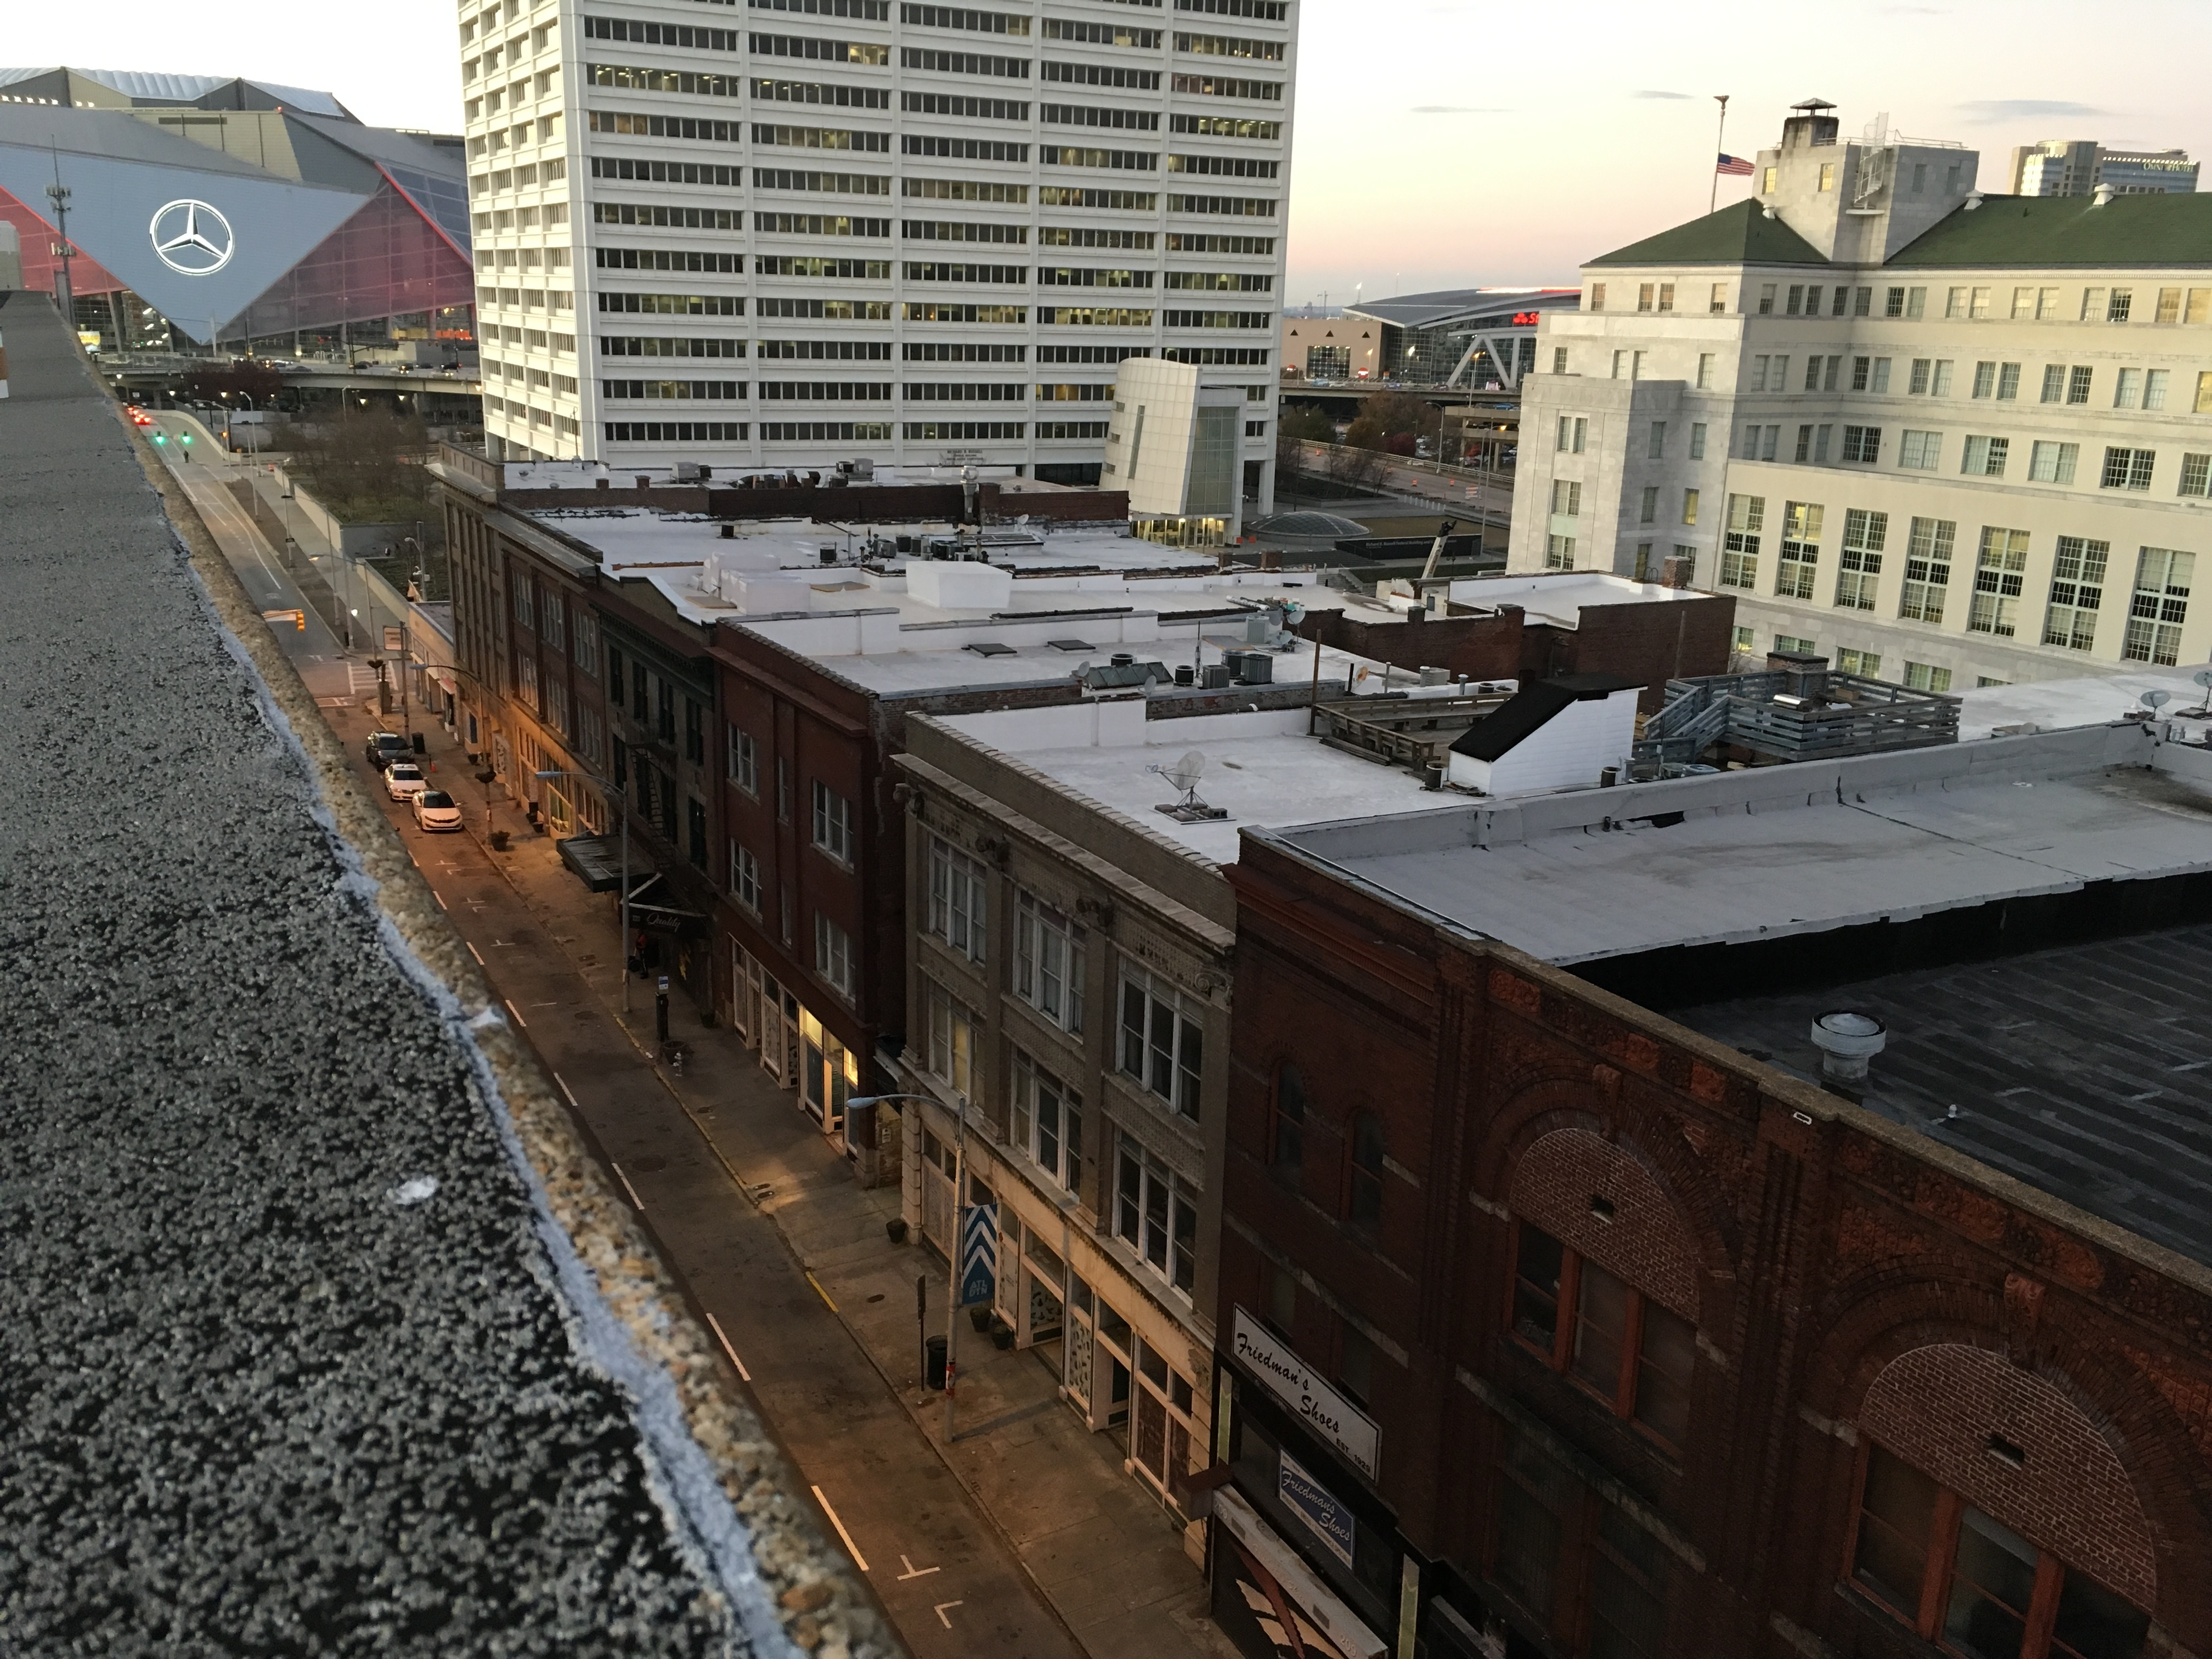 A look down a long street of old rooftops that leads to Mercedes-Benz Stadium.